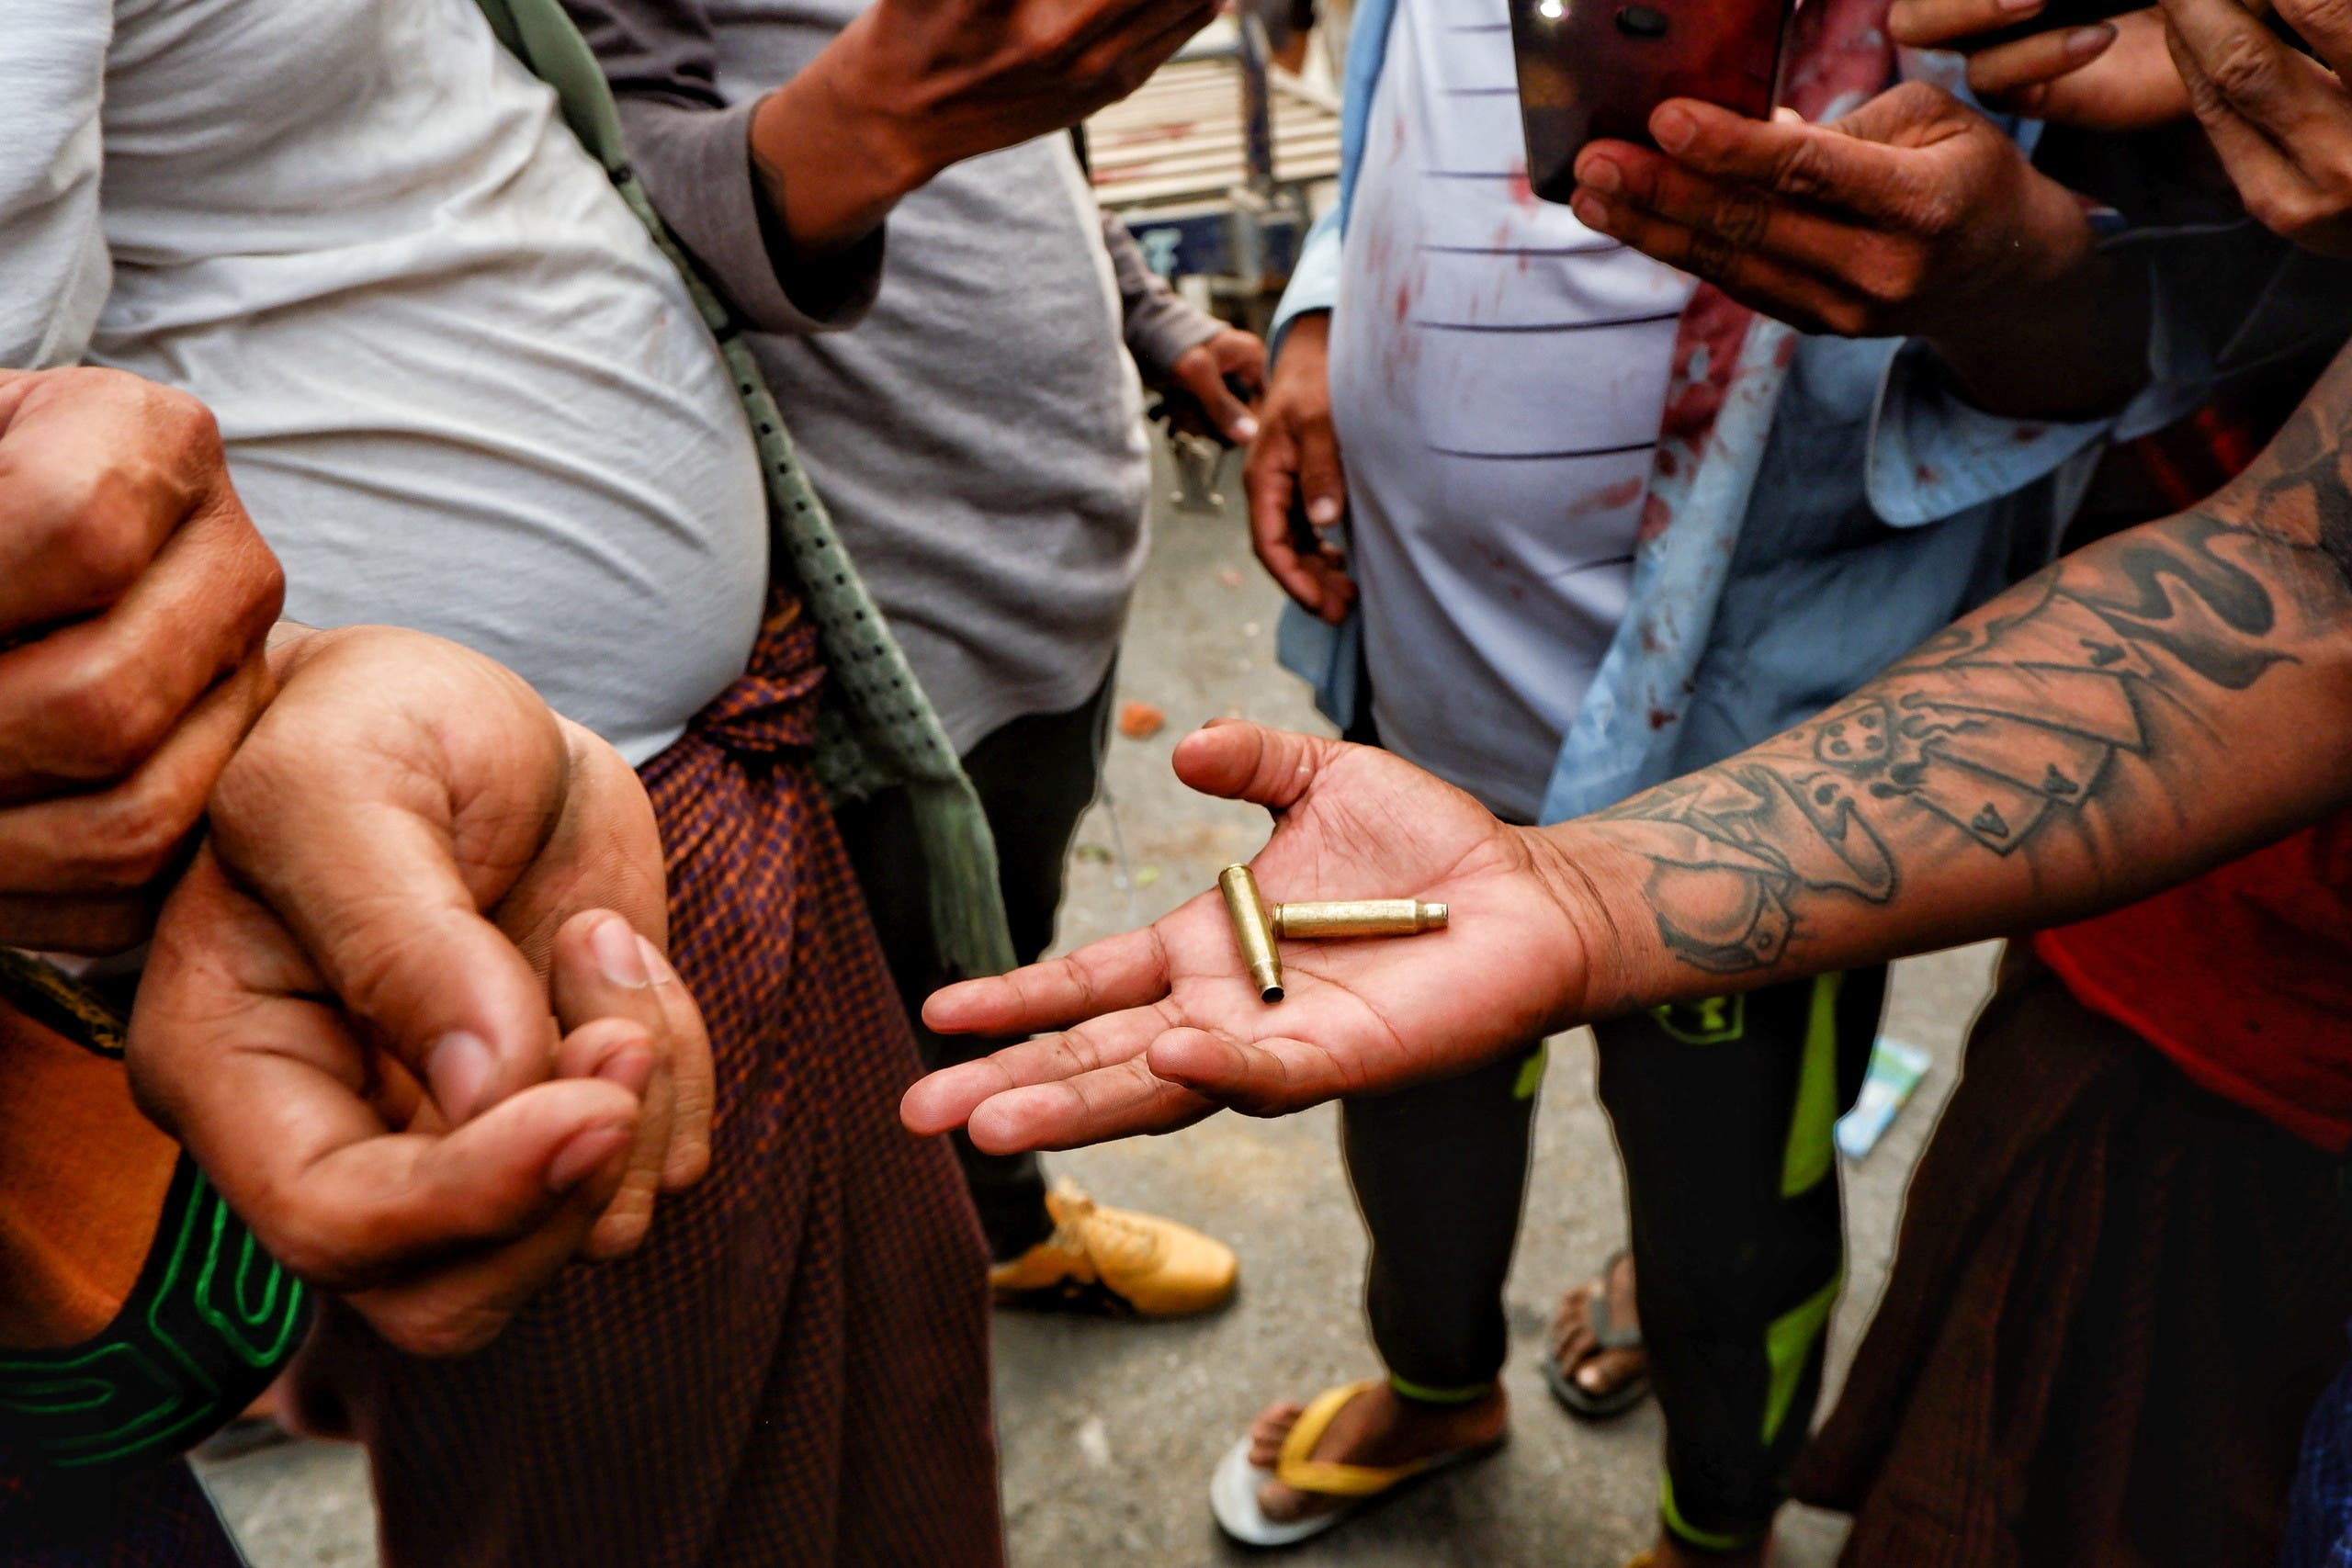 A person shows bullet shells during a protest against the military coup, in Mandalay, Myanmar, February 20, 2021. (Reuters)